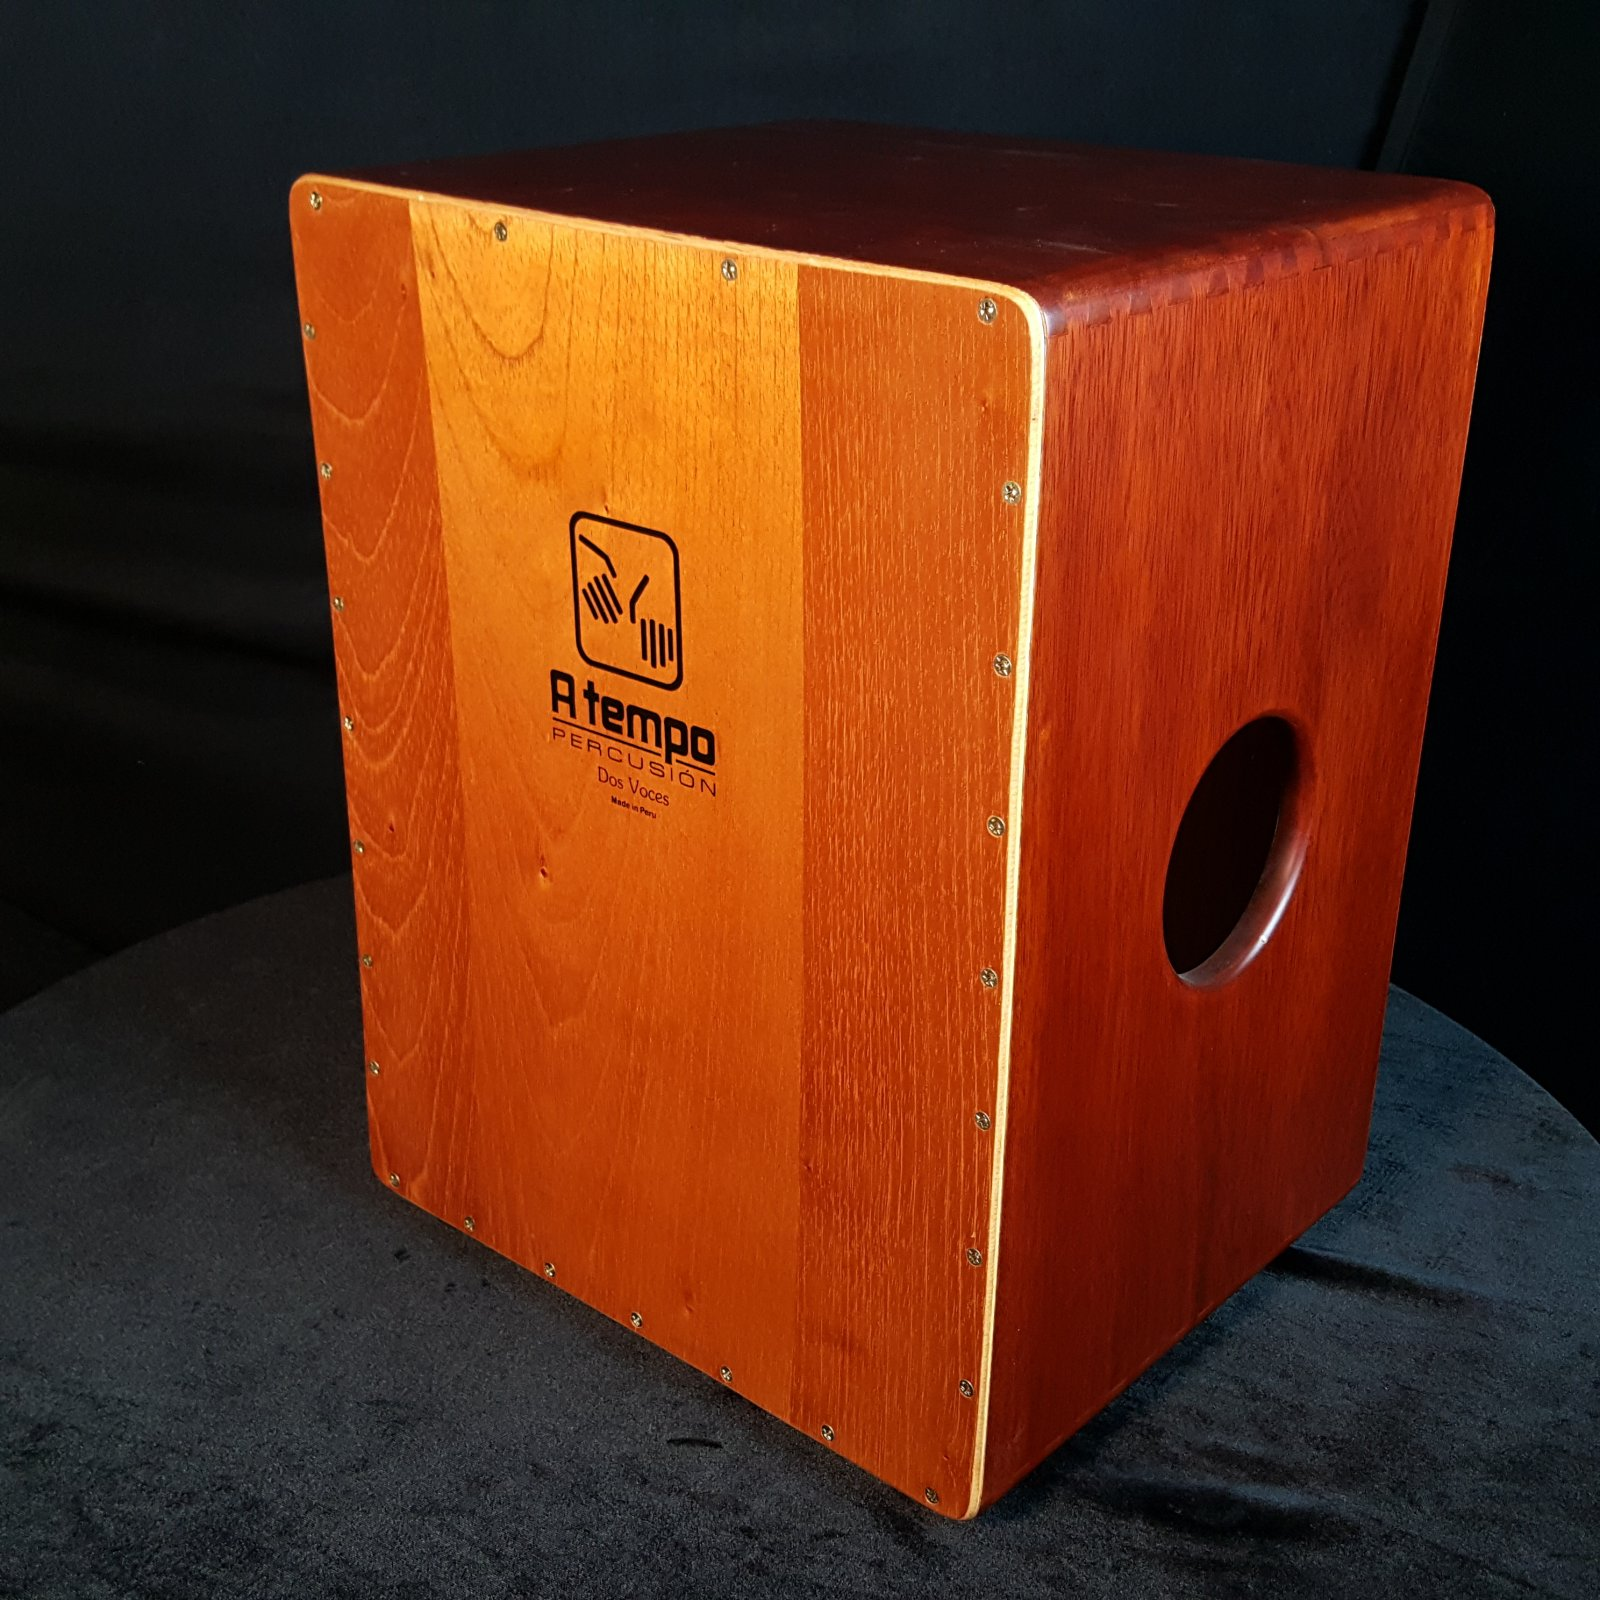 A Tempo CJ-DOSV-00 Dos Voces (Two Voices) Cajon with Bag